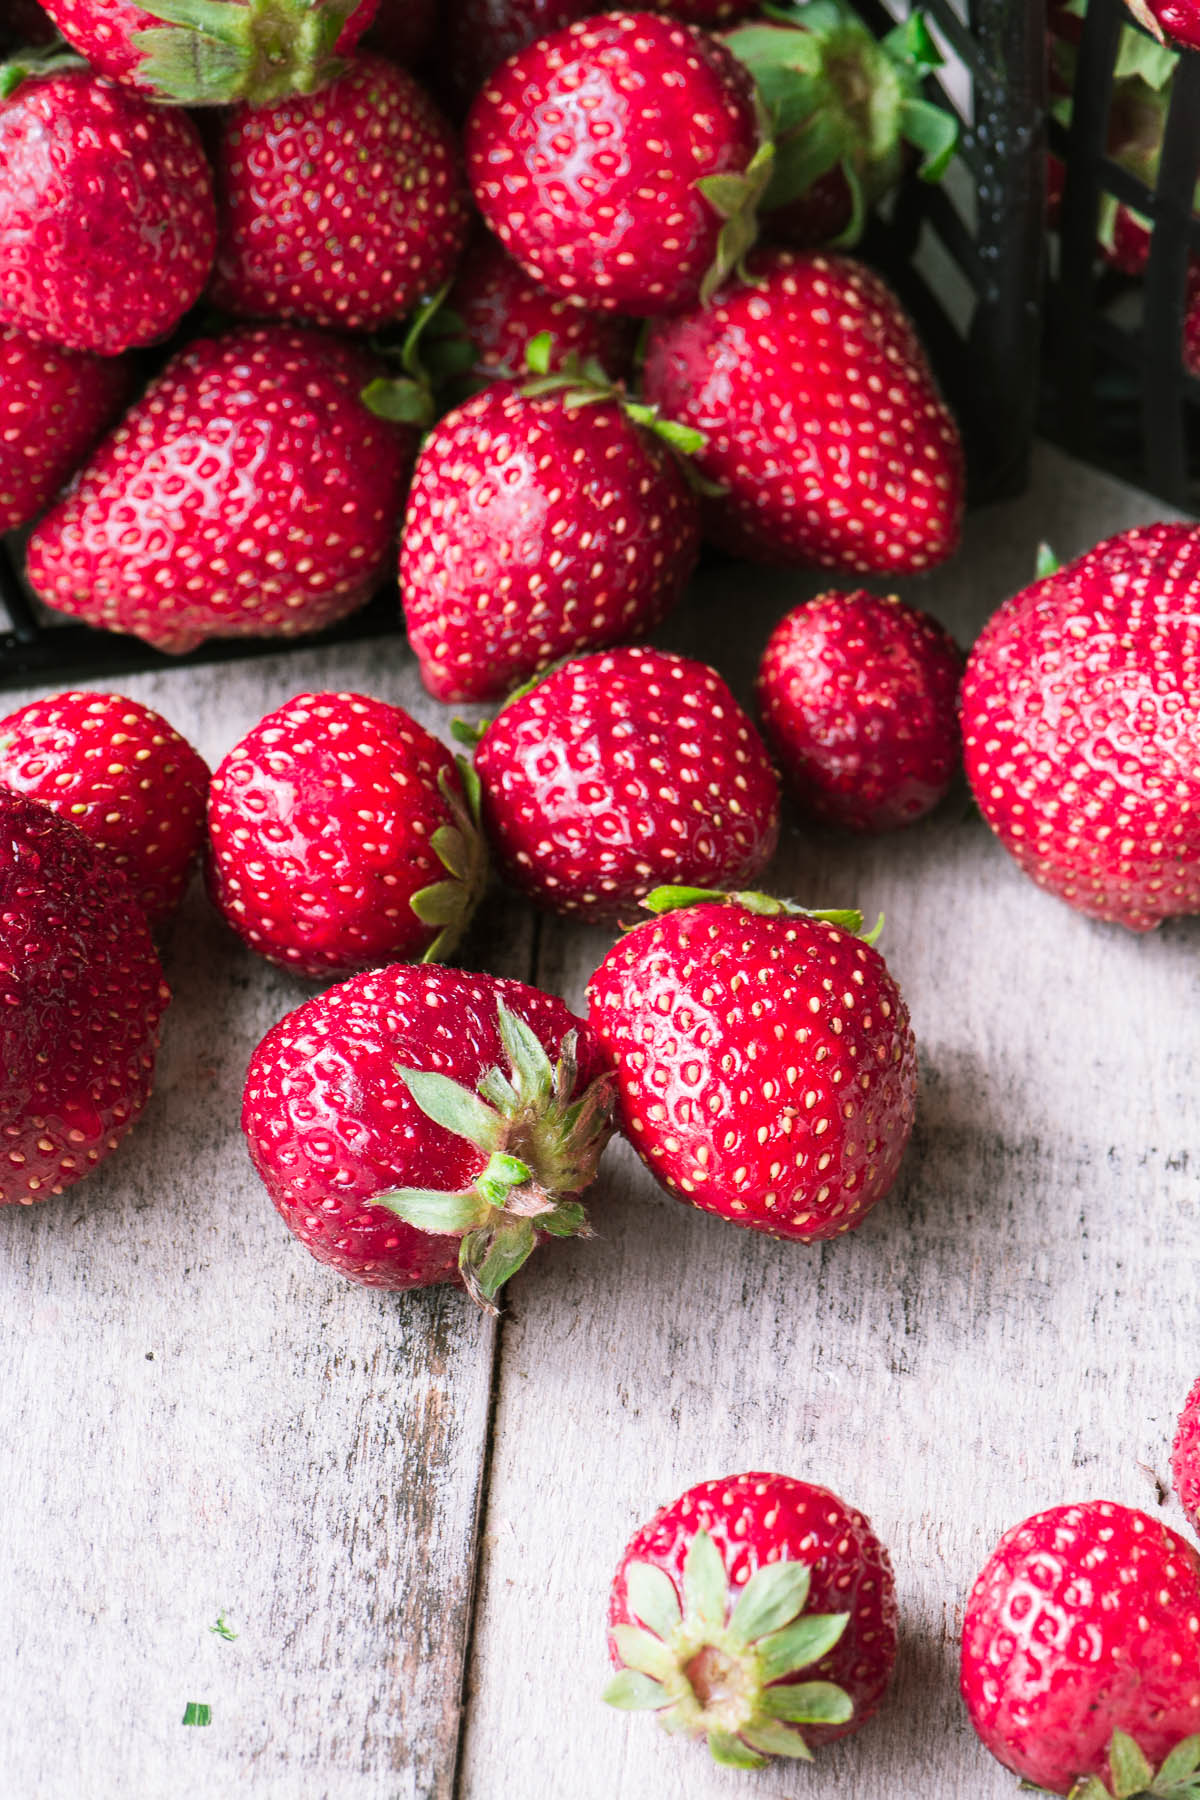 fresh strawberries on a wooden surface